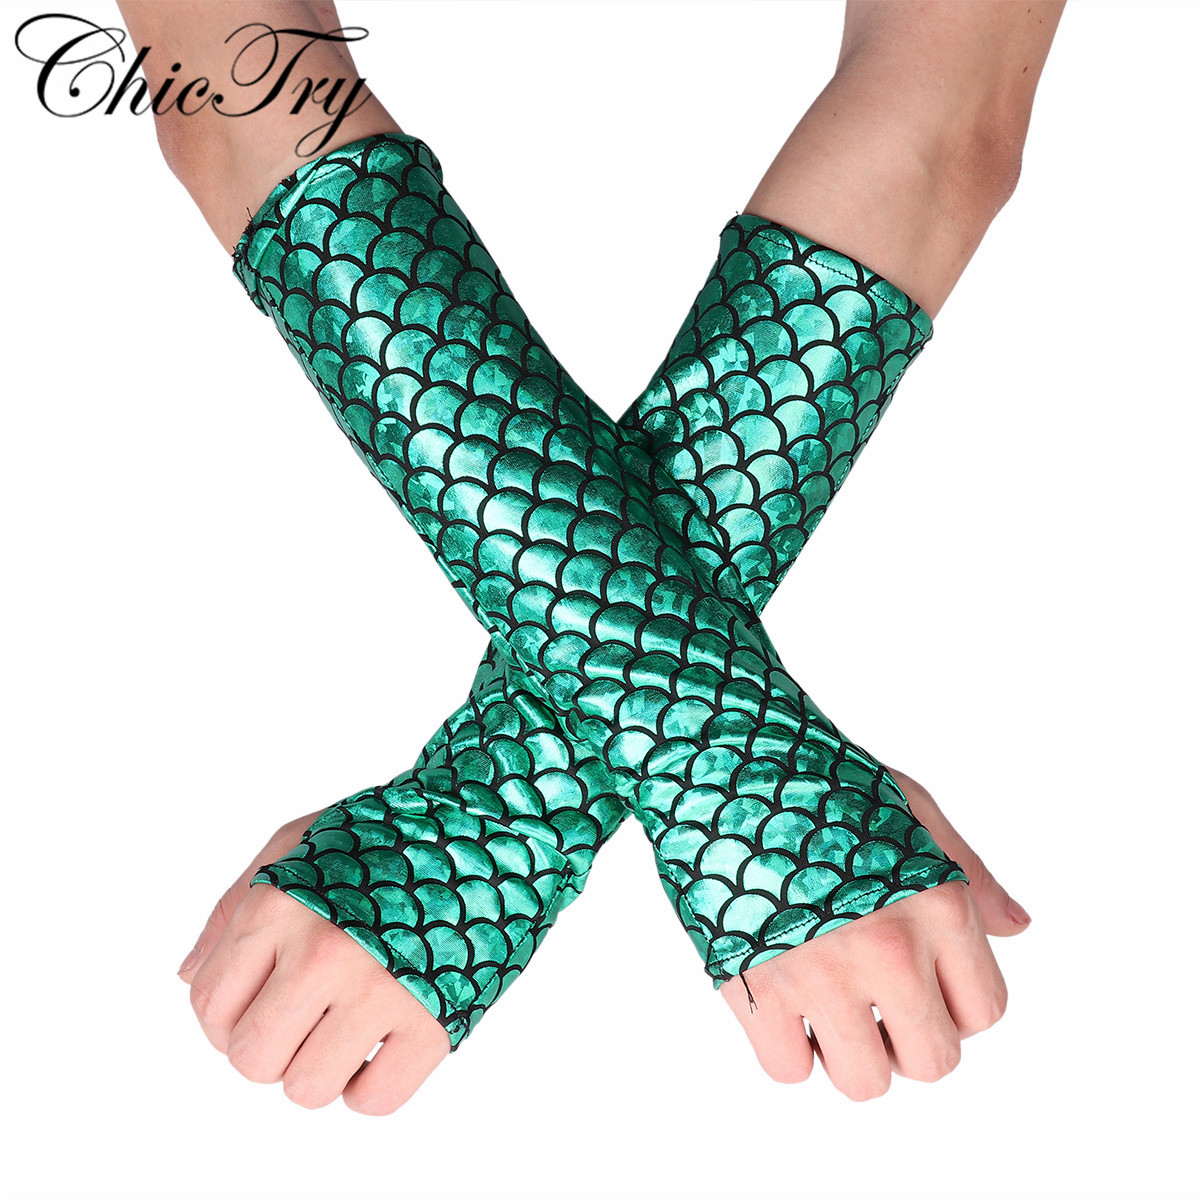 Women Female Mermaid Fish Scale Fingerless Csoplay Gloves Long Gloves Arm Sleeves Adult Halloween Fancy Party Costumes Accessory